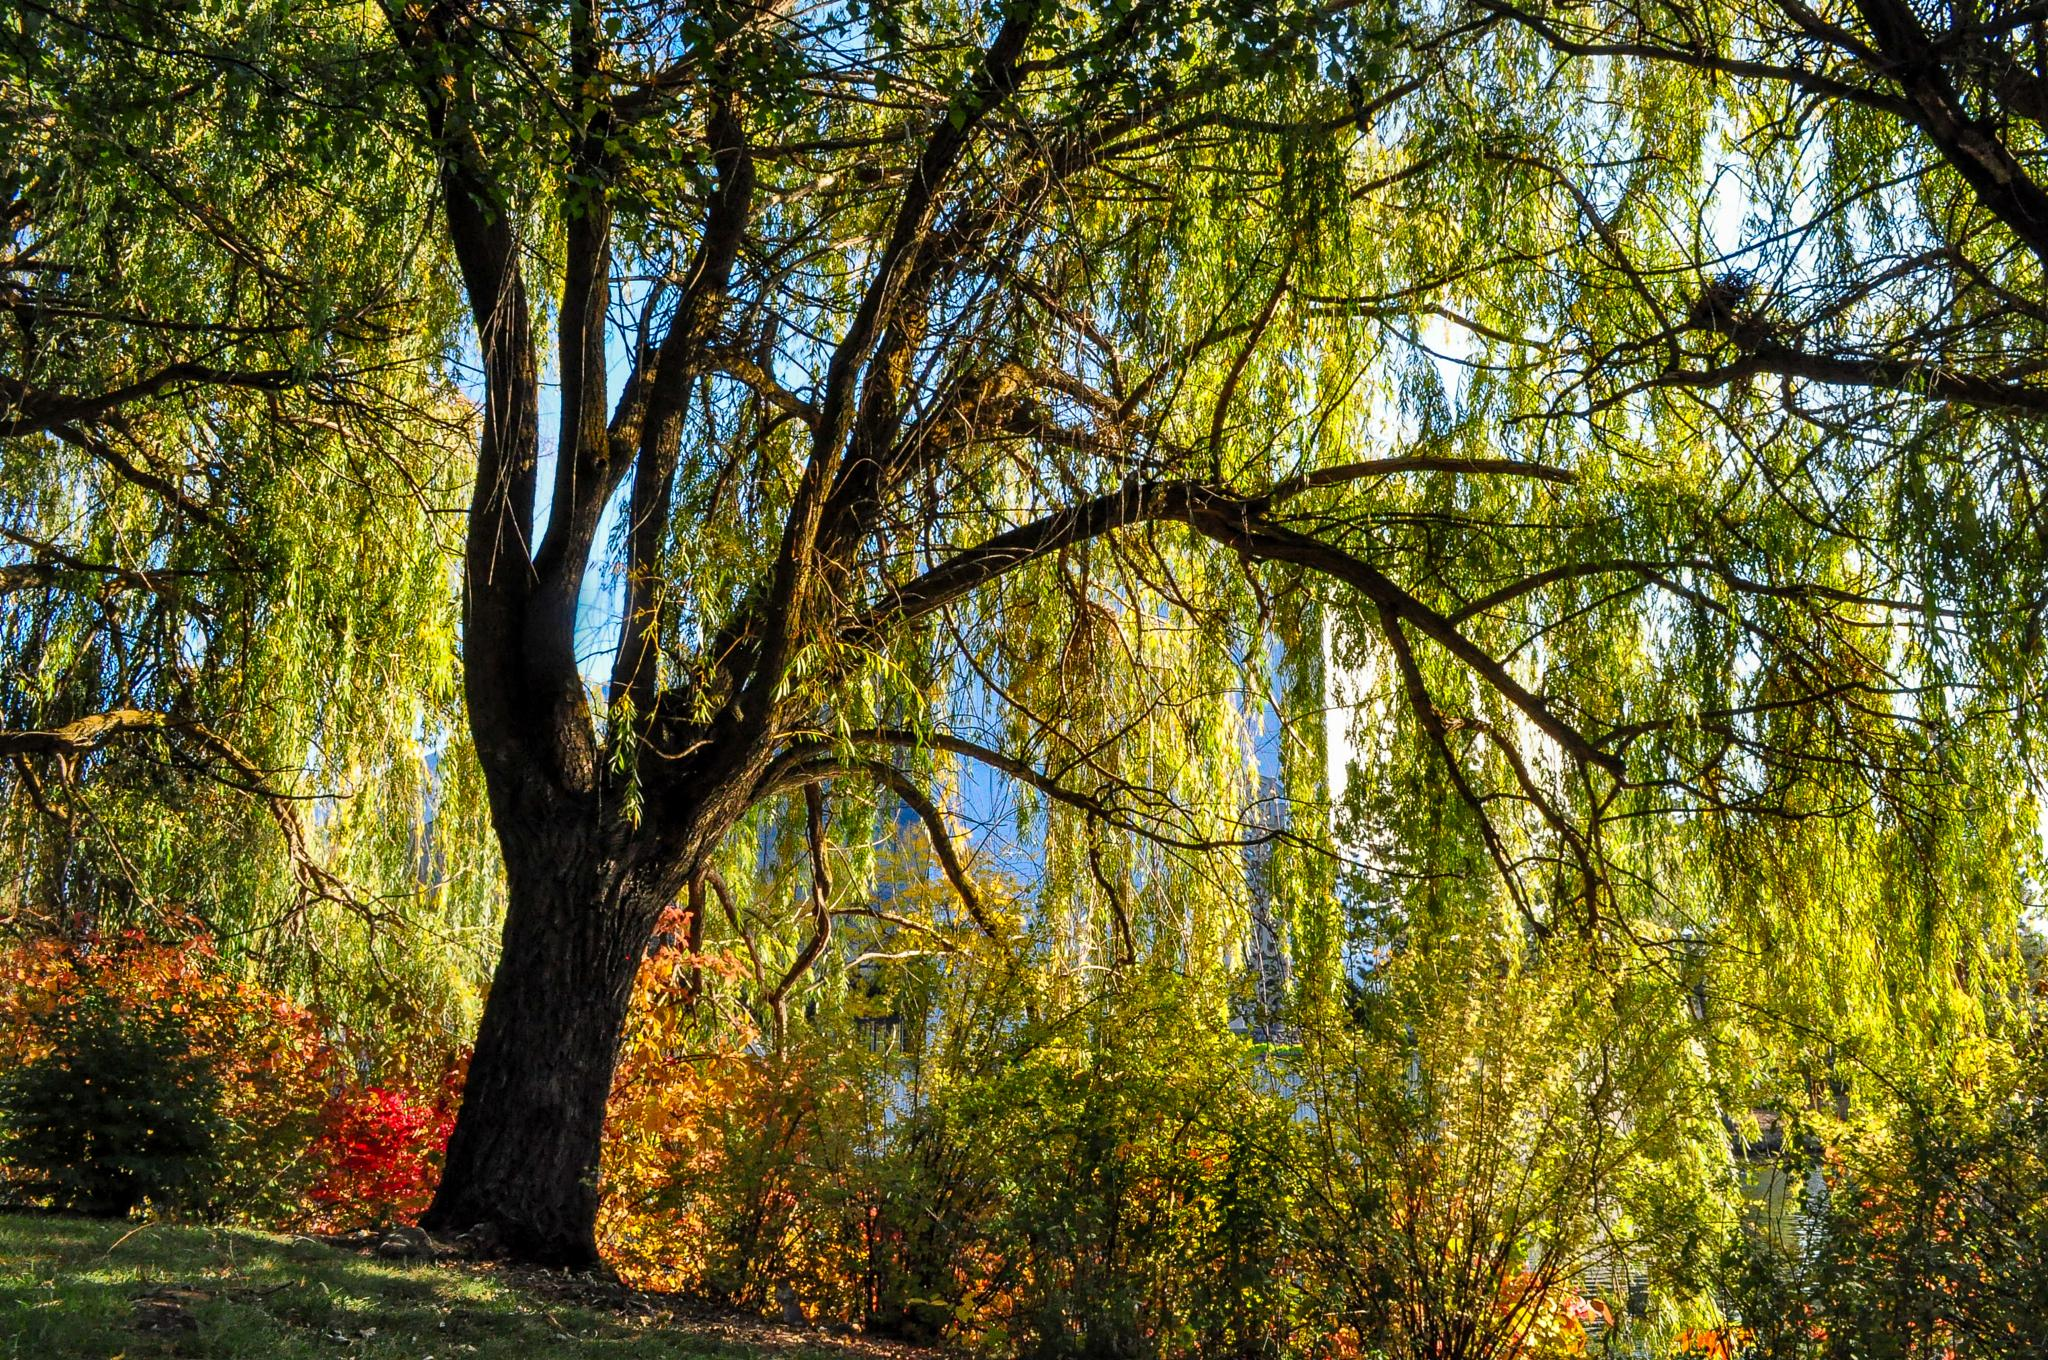 Autumn Willow by mark.a.ament